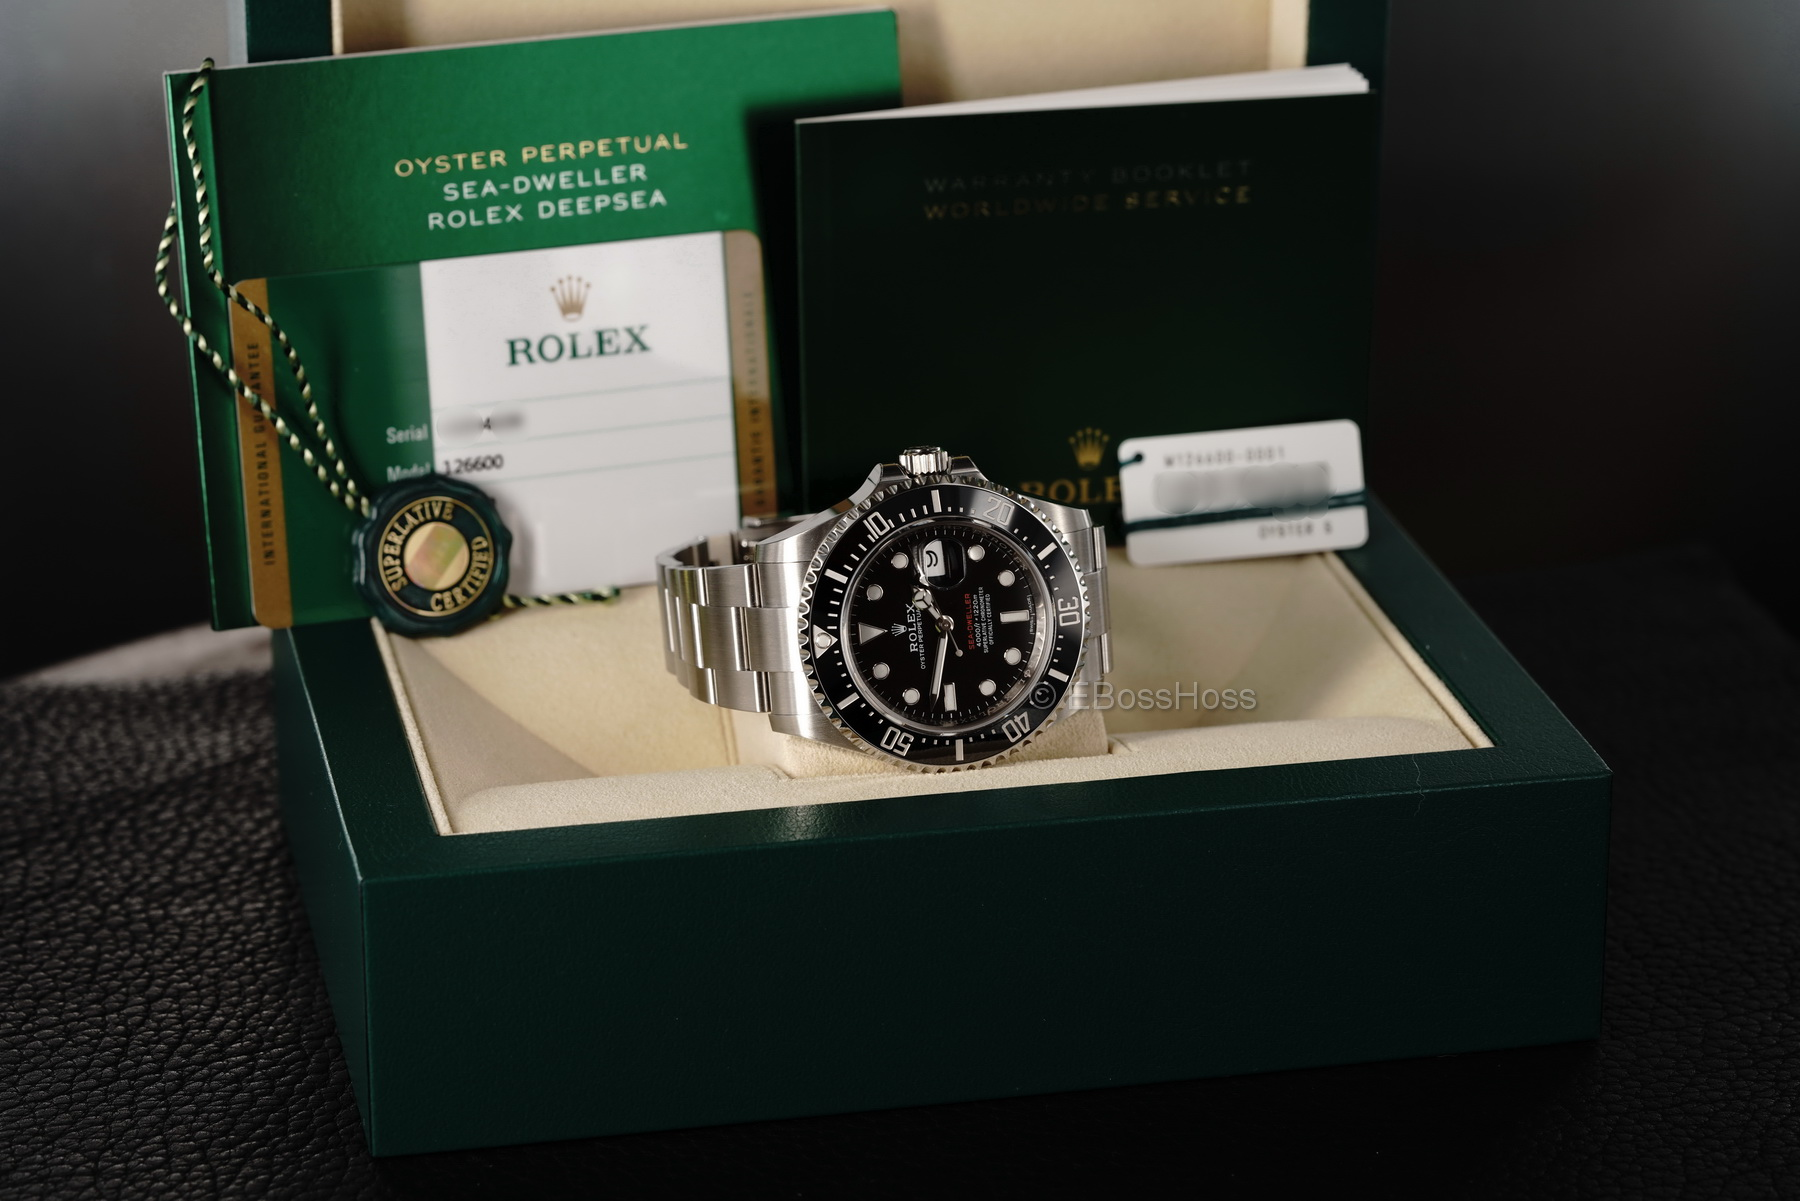 Rolex 43mm Red Reference SEA-DWELLER -126600